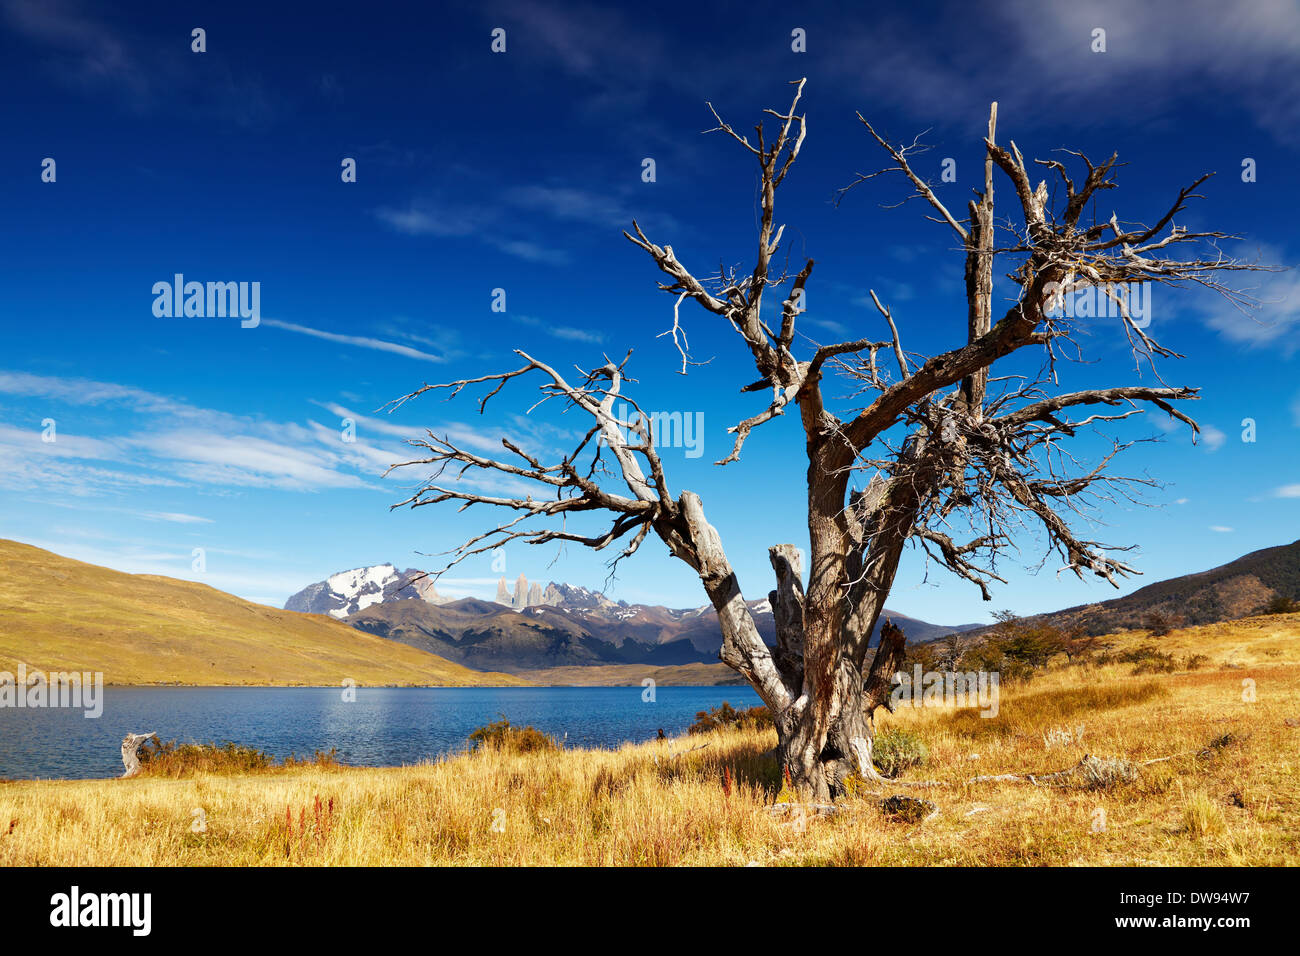 Dry tree in Torres del Paine National Park, Laguna Azul, Patagonia, Chile - Stock Image